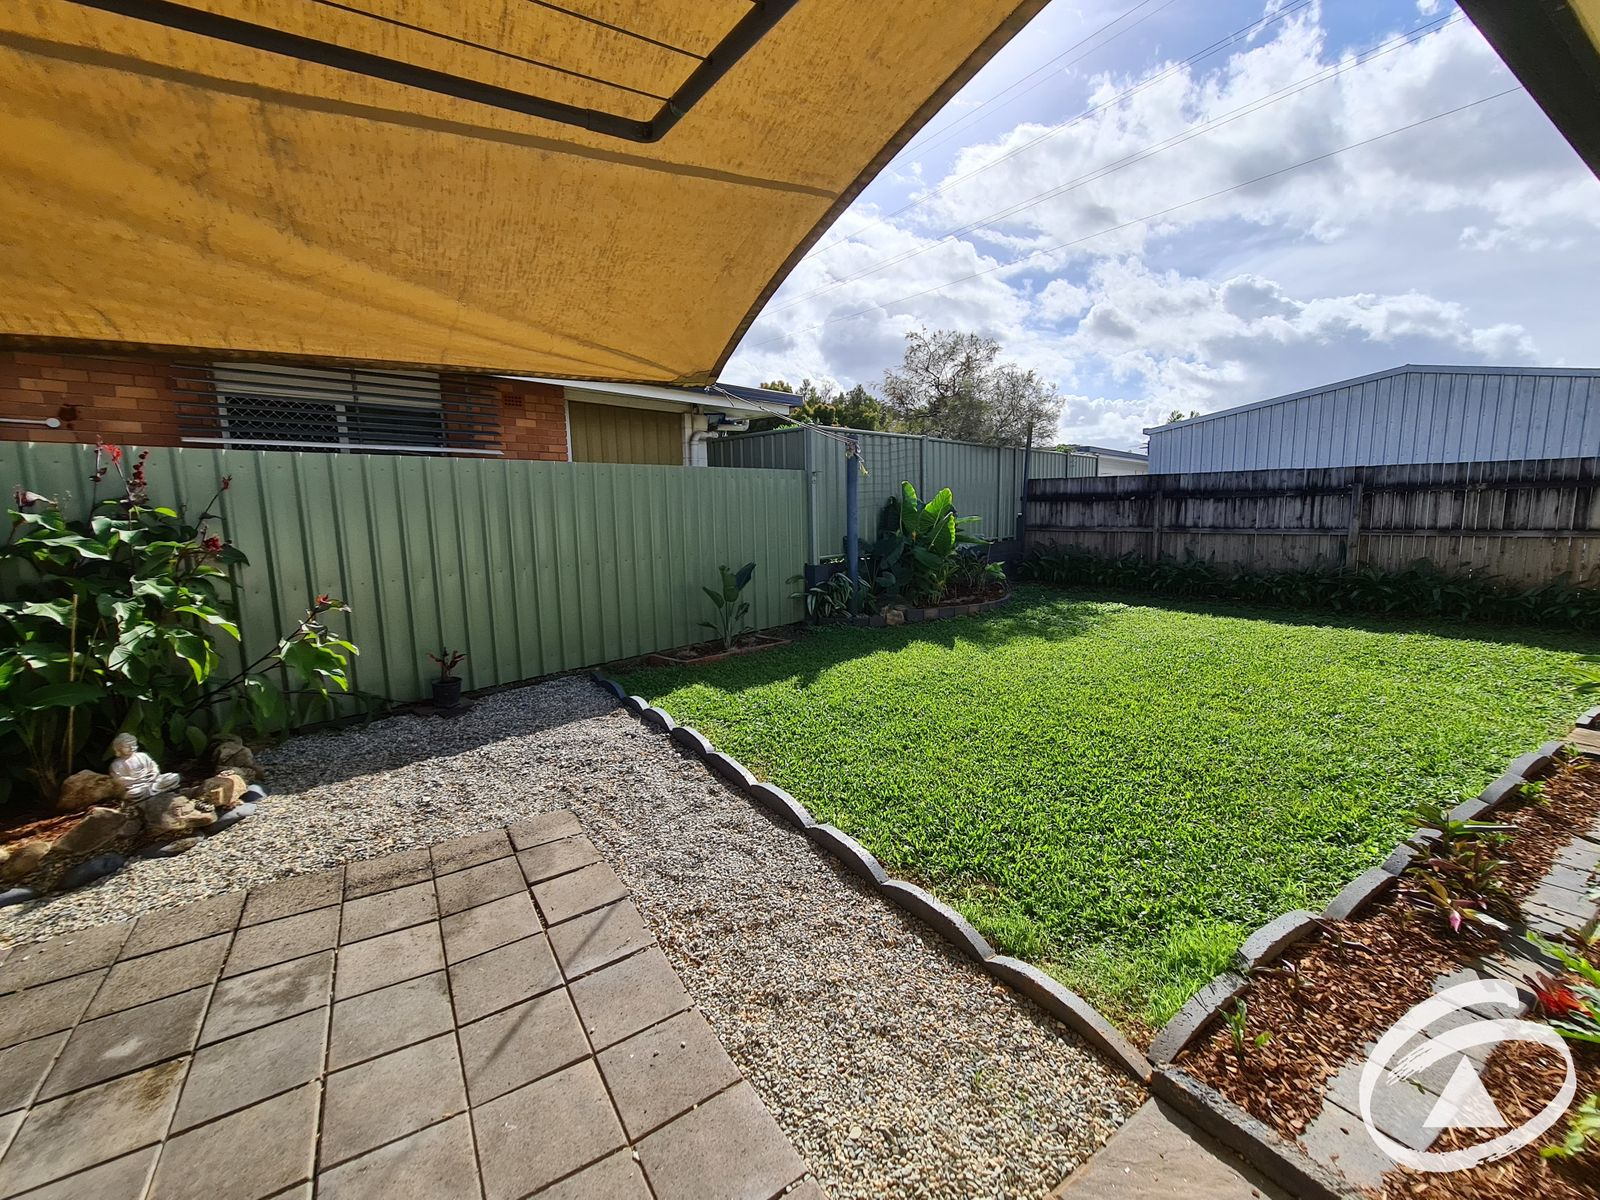 2/78 Toogood Road, Woree, QLD 4868